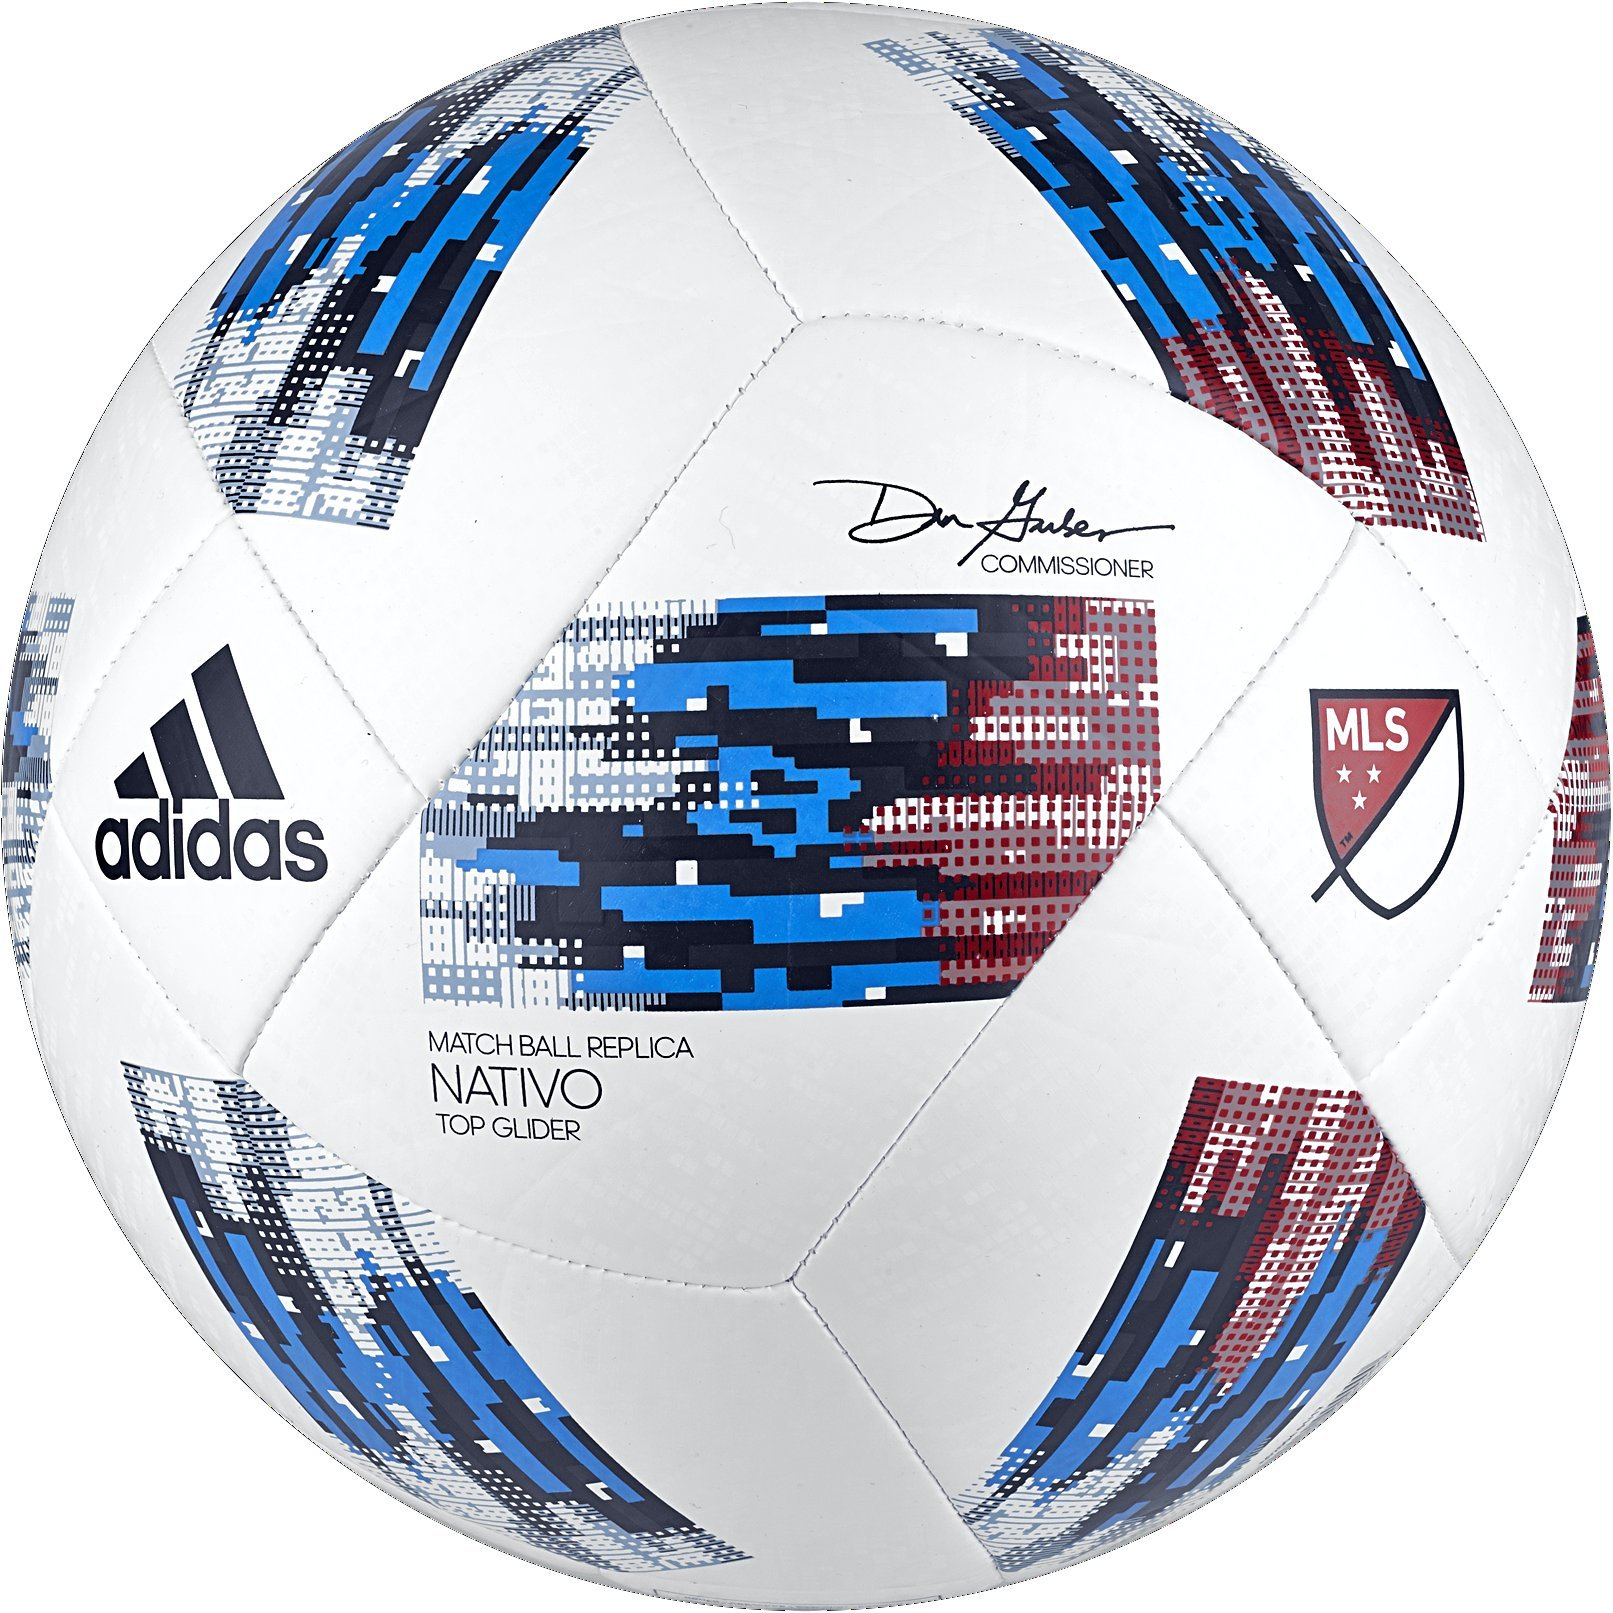 adidas 2018 MLS Top Glider Soccer Ball, White/Blue, Size 3